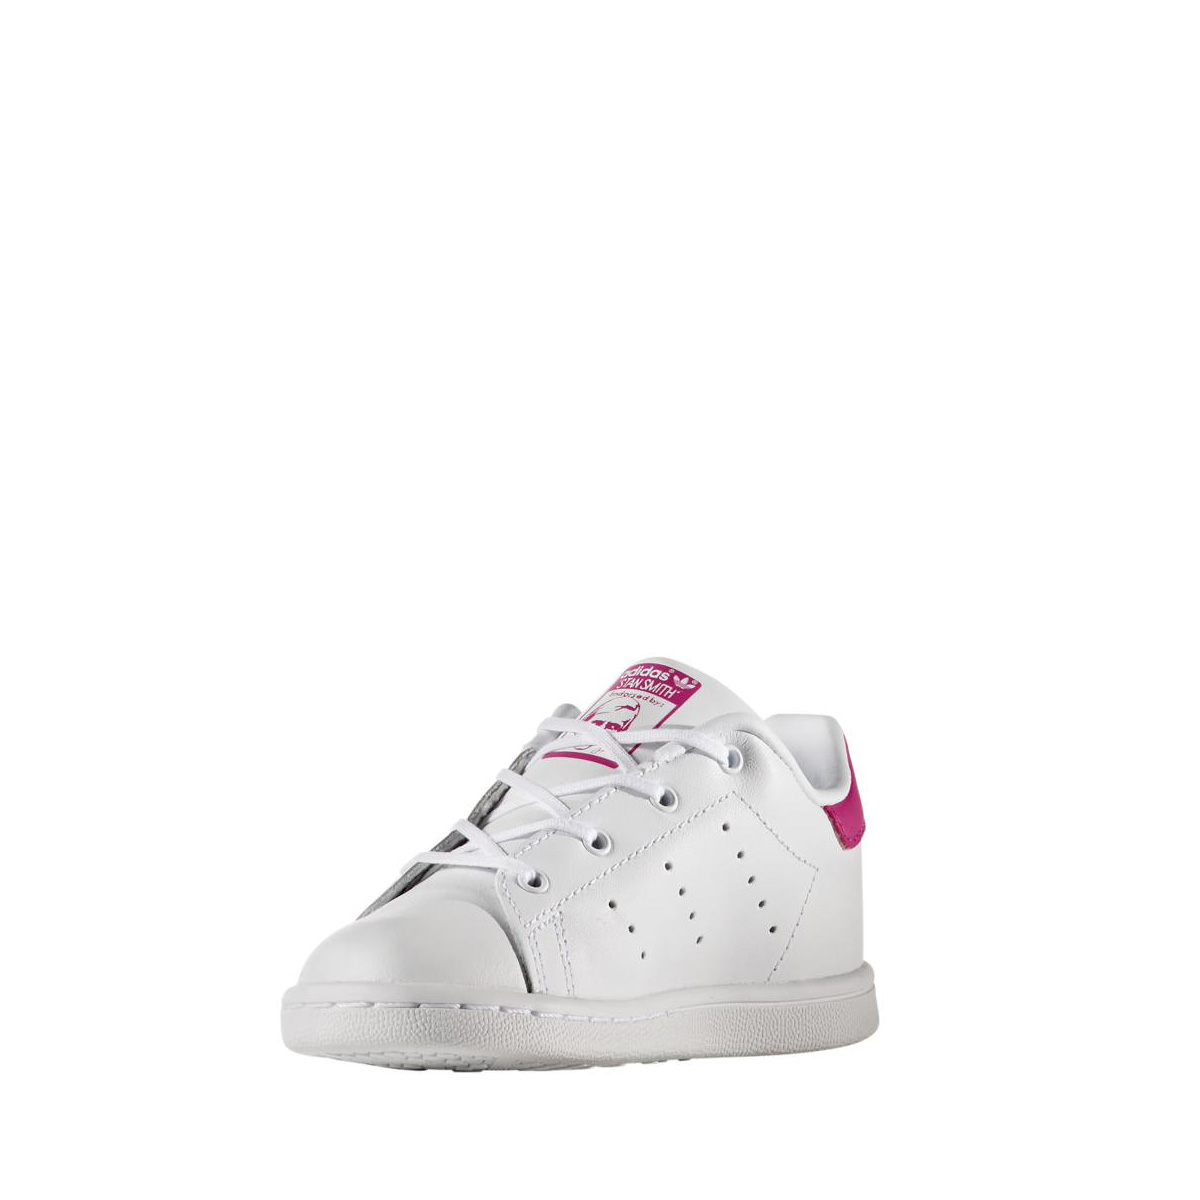 Adidas Stan Smith Infants/toddlers Shoes White/bold Pink Bb2999 High Quality Goods Kids' Clothing, Shoes & Accs